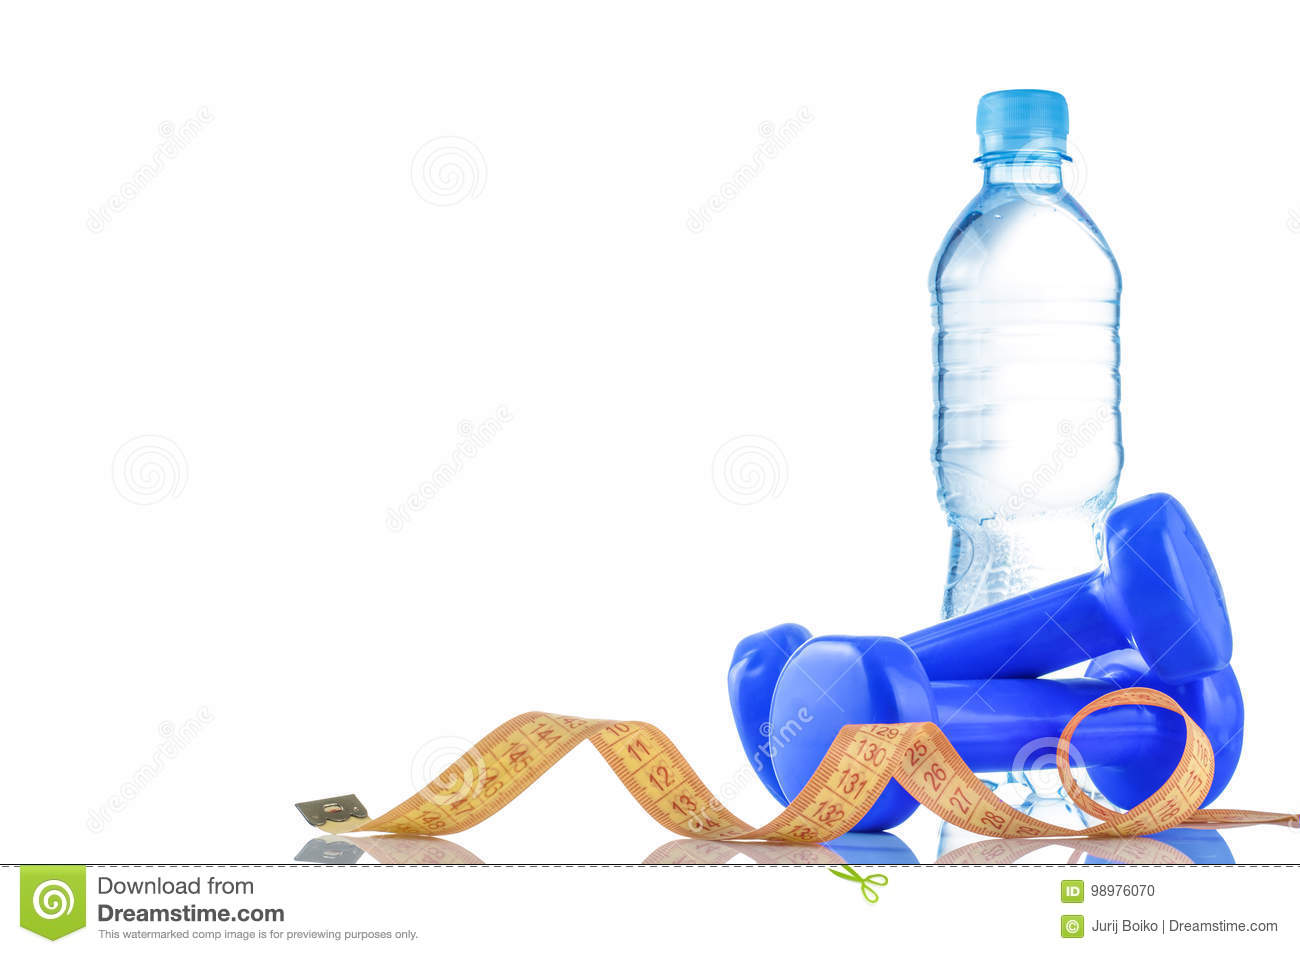 Fitnes Symbols Red Dumbbells A Bottle Of Water And A Towel The